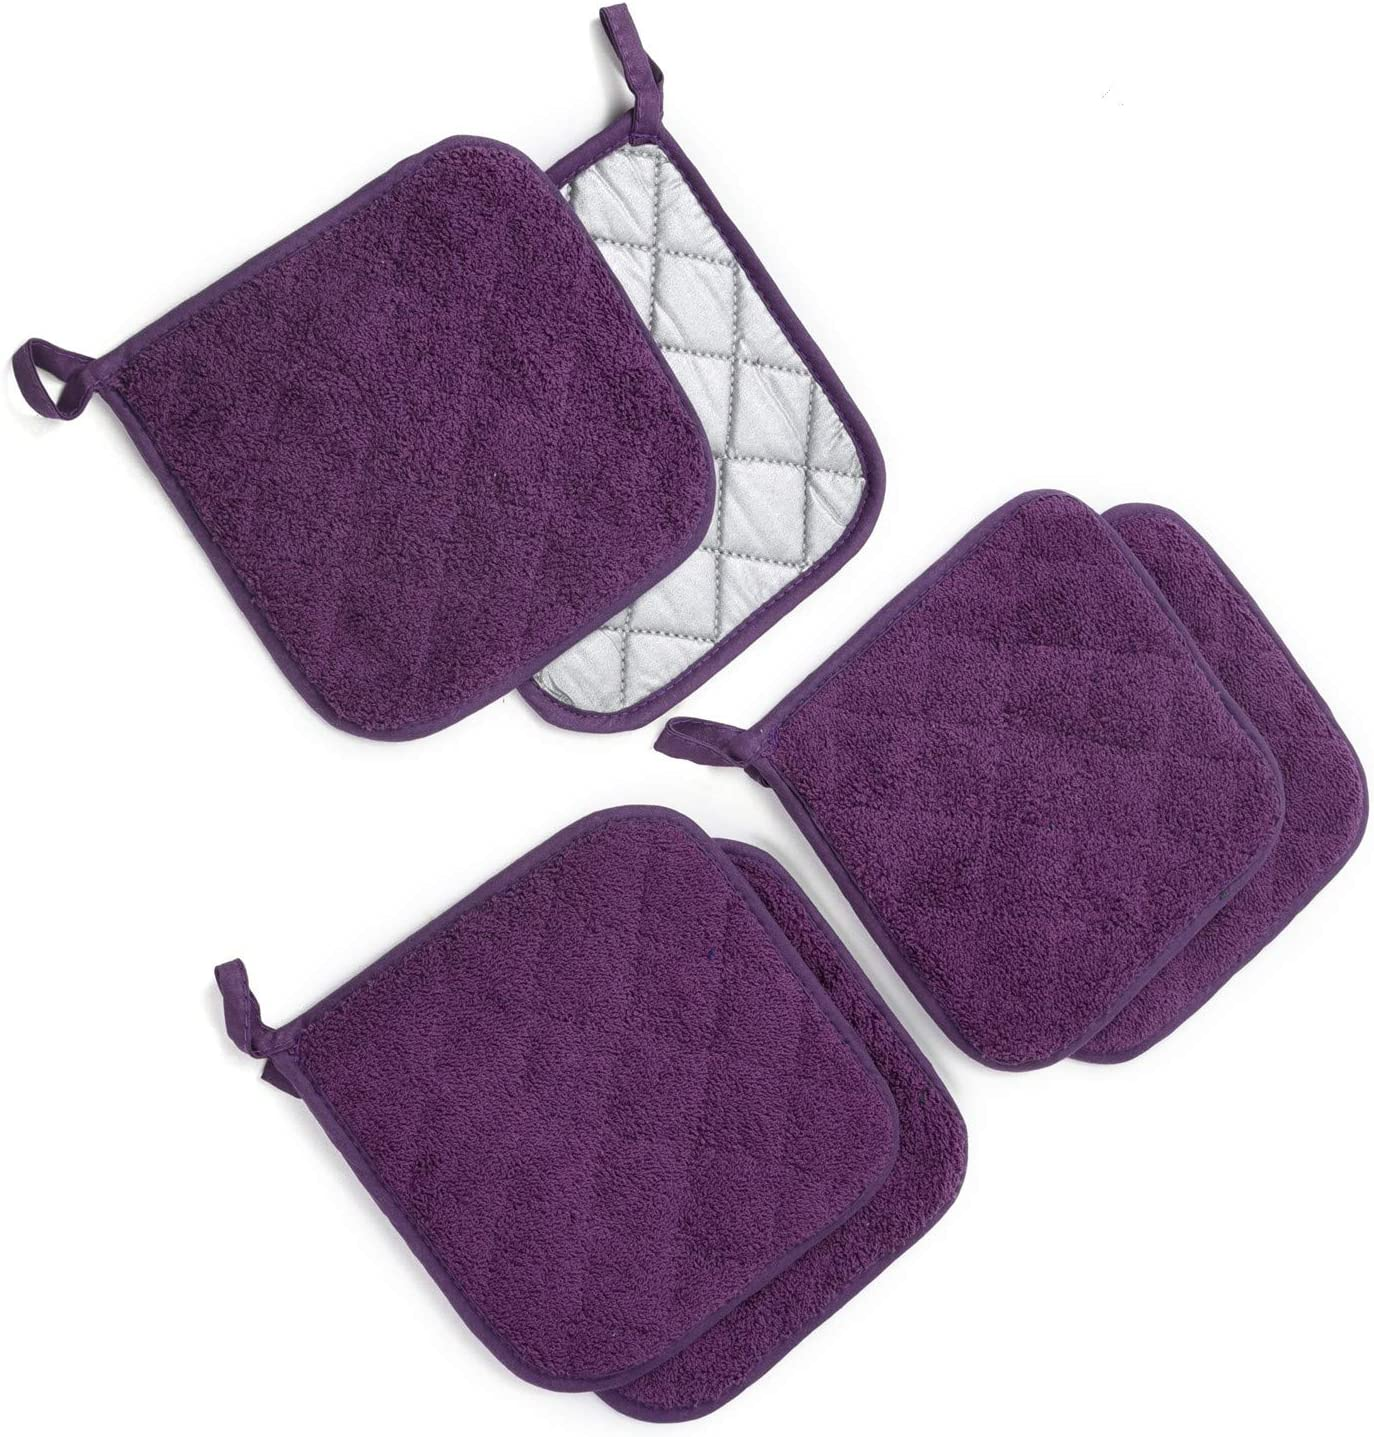 "Jennice House Potholders Set, 6 Pack of Heat Resistant Hot Mat Coasters Pure Cotton Kitchen Everyday Pot Holders, 7""X7"" for Cooking and Baking"